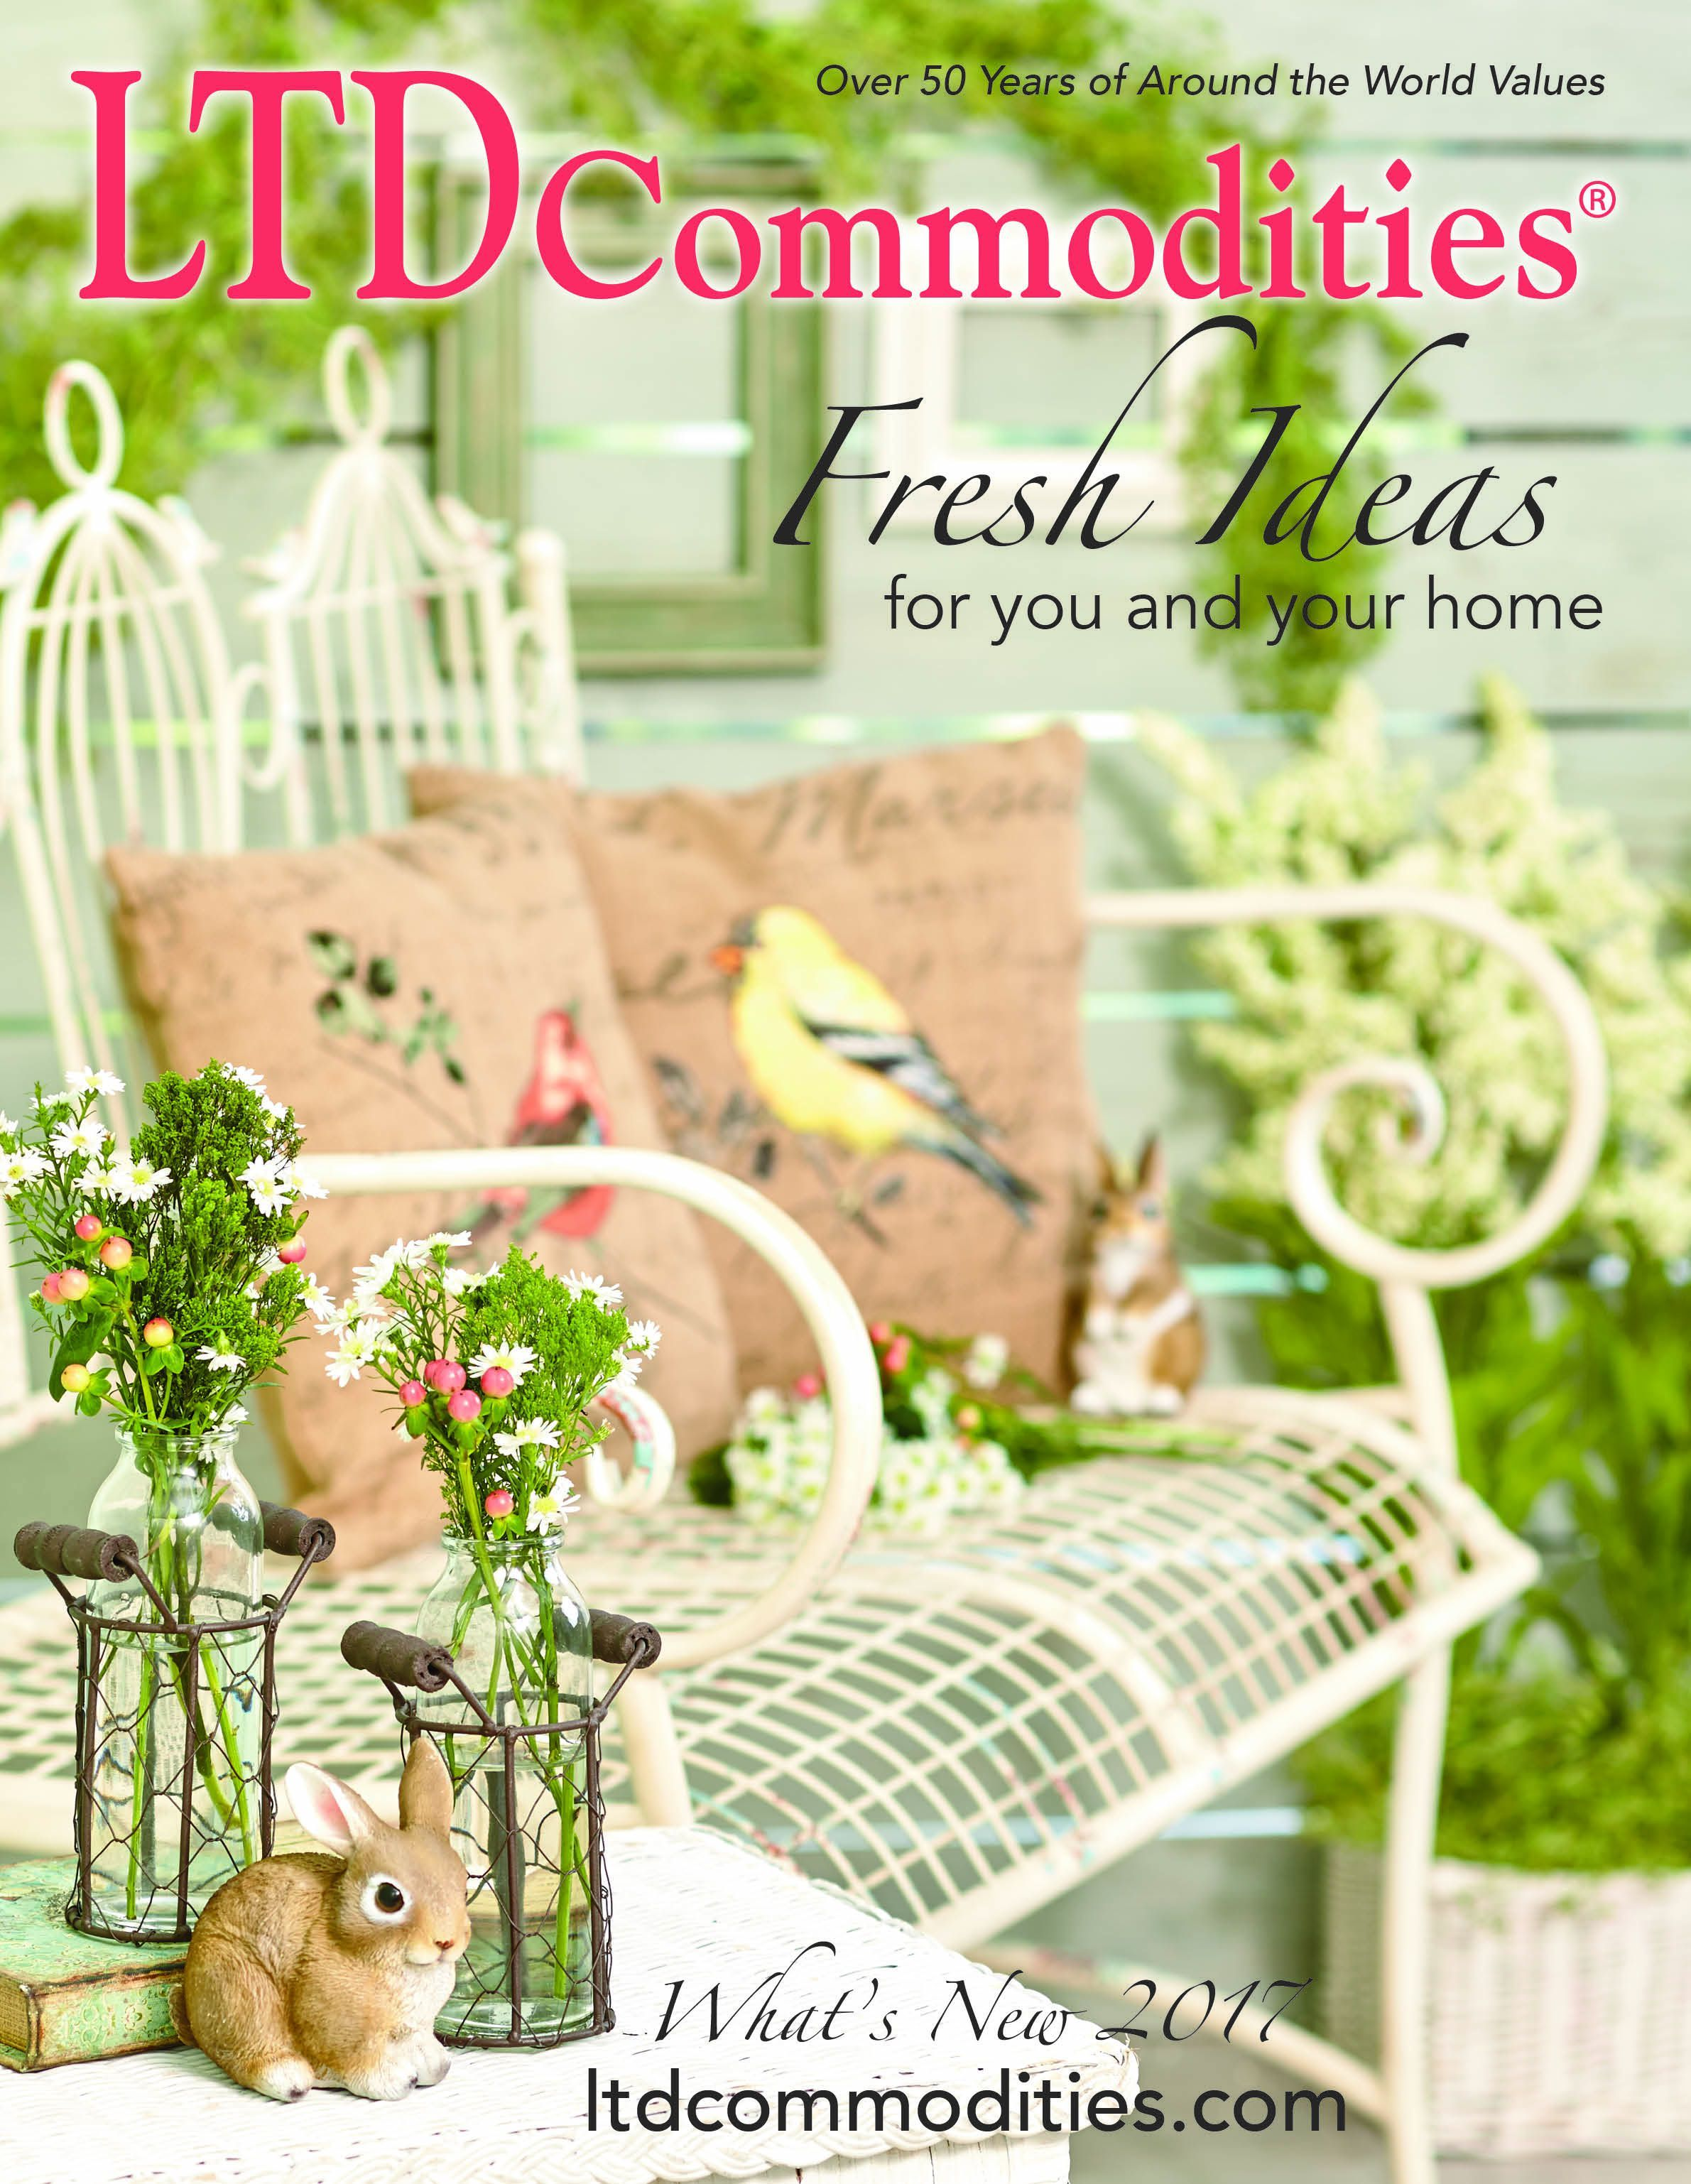 Ltd Christmas Catalog.How To Request A Free Ltd Commodities Abc Distributing